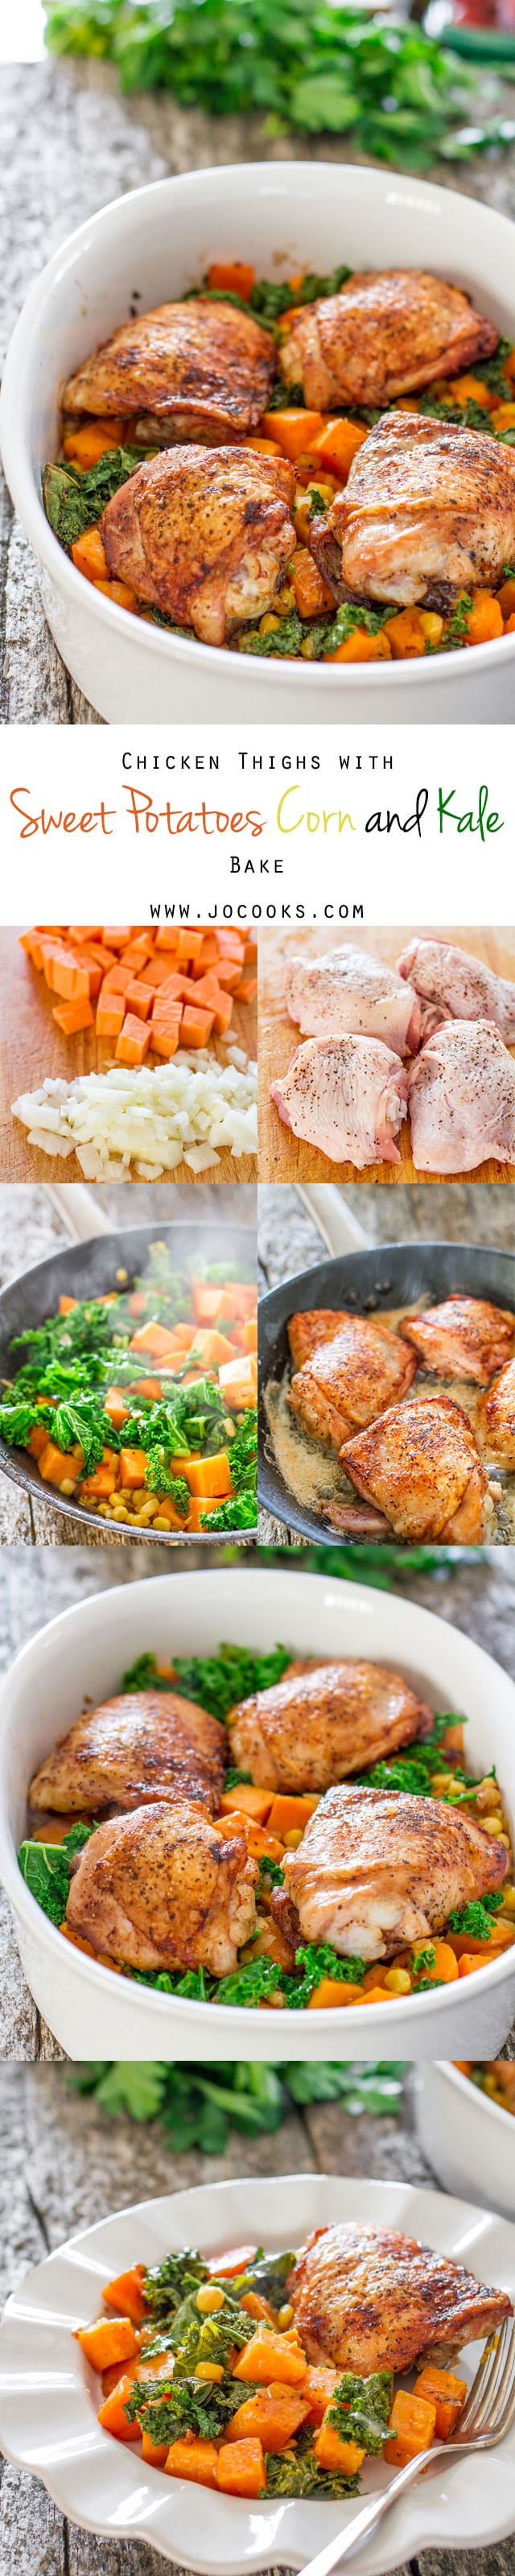 chicken casserole delicious chicken casserole this chicken and kale ...